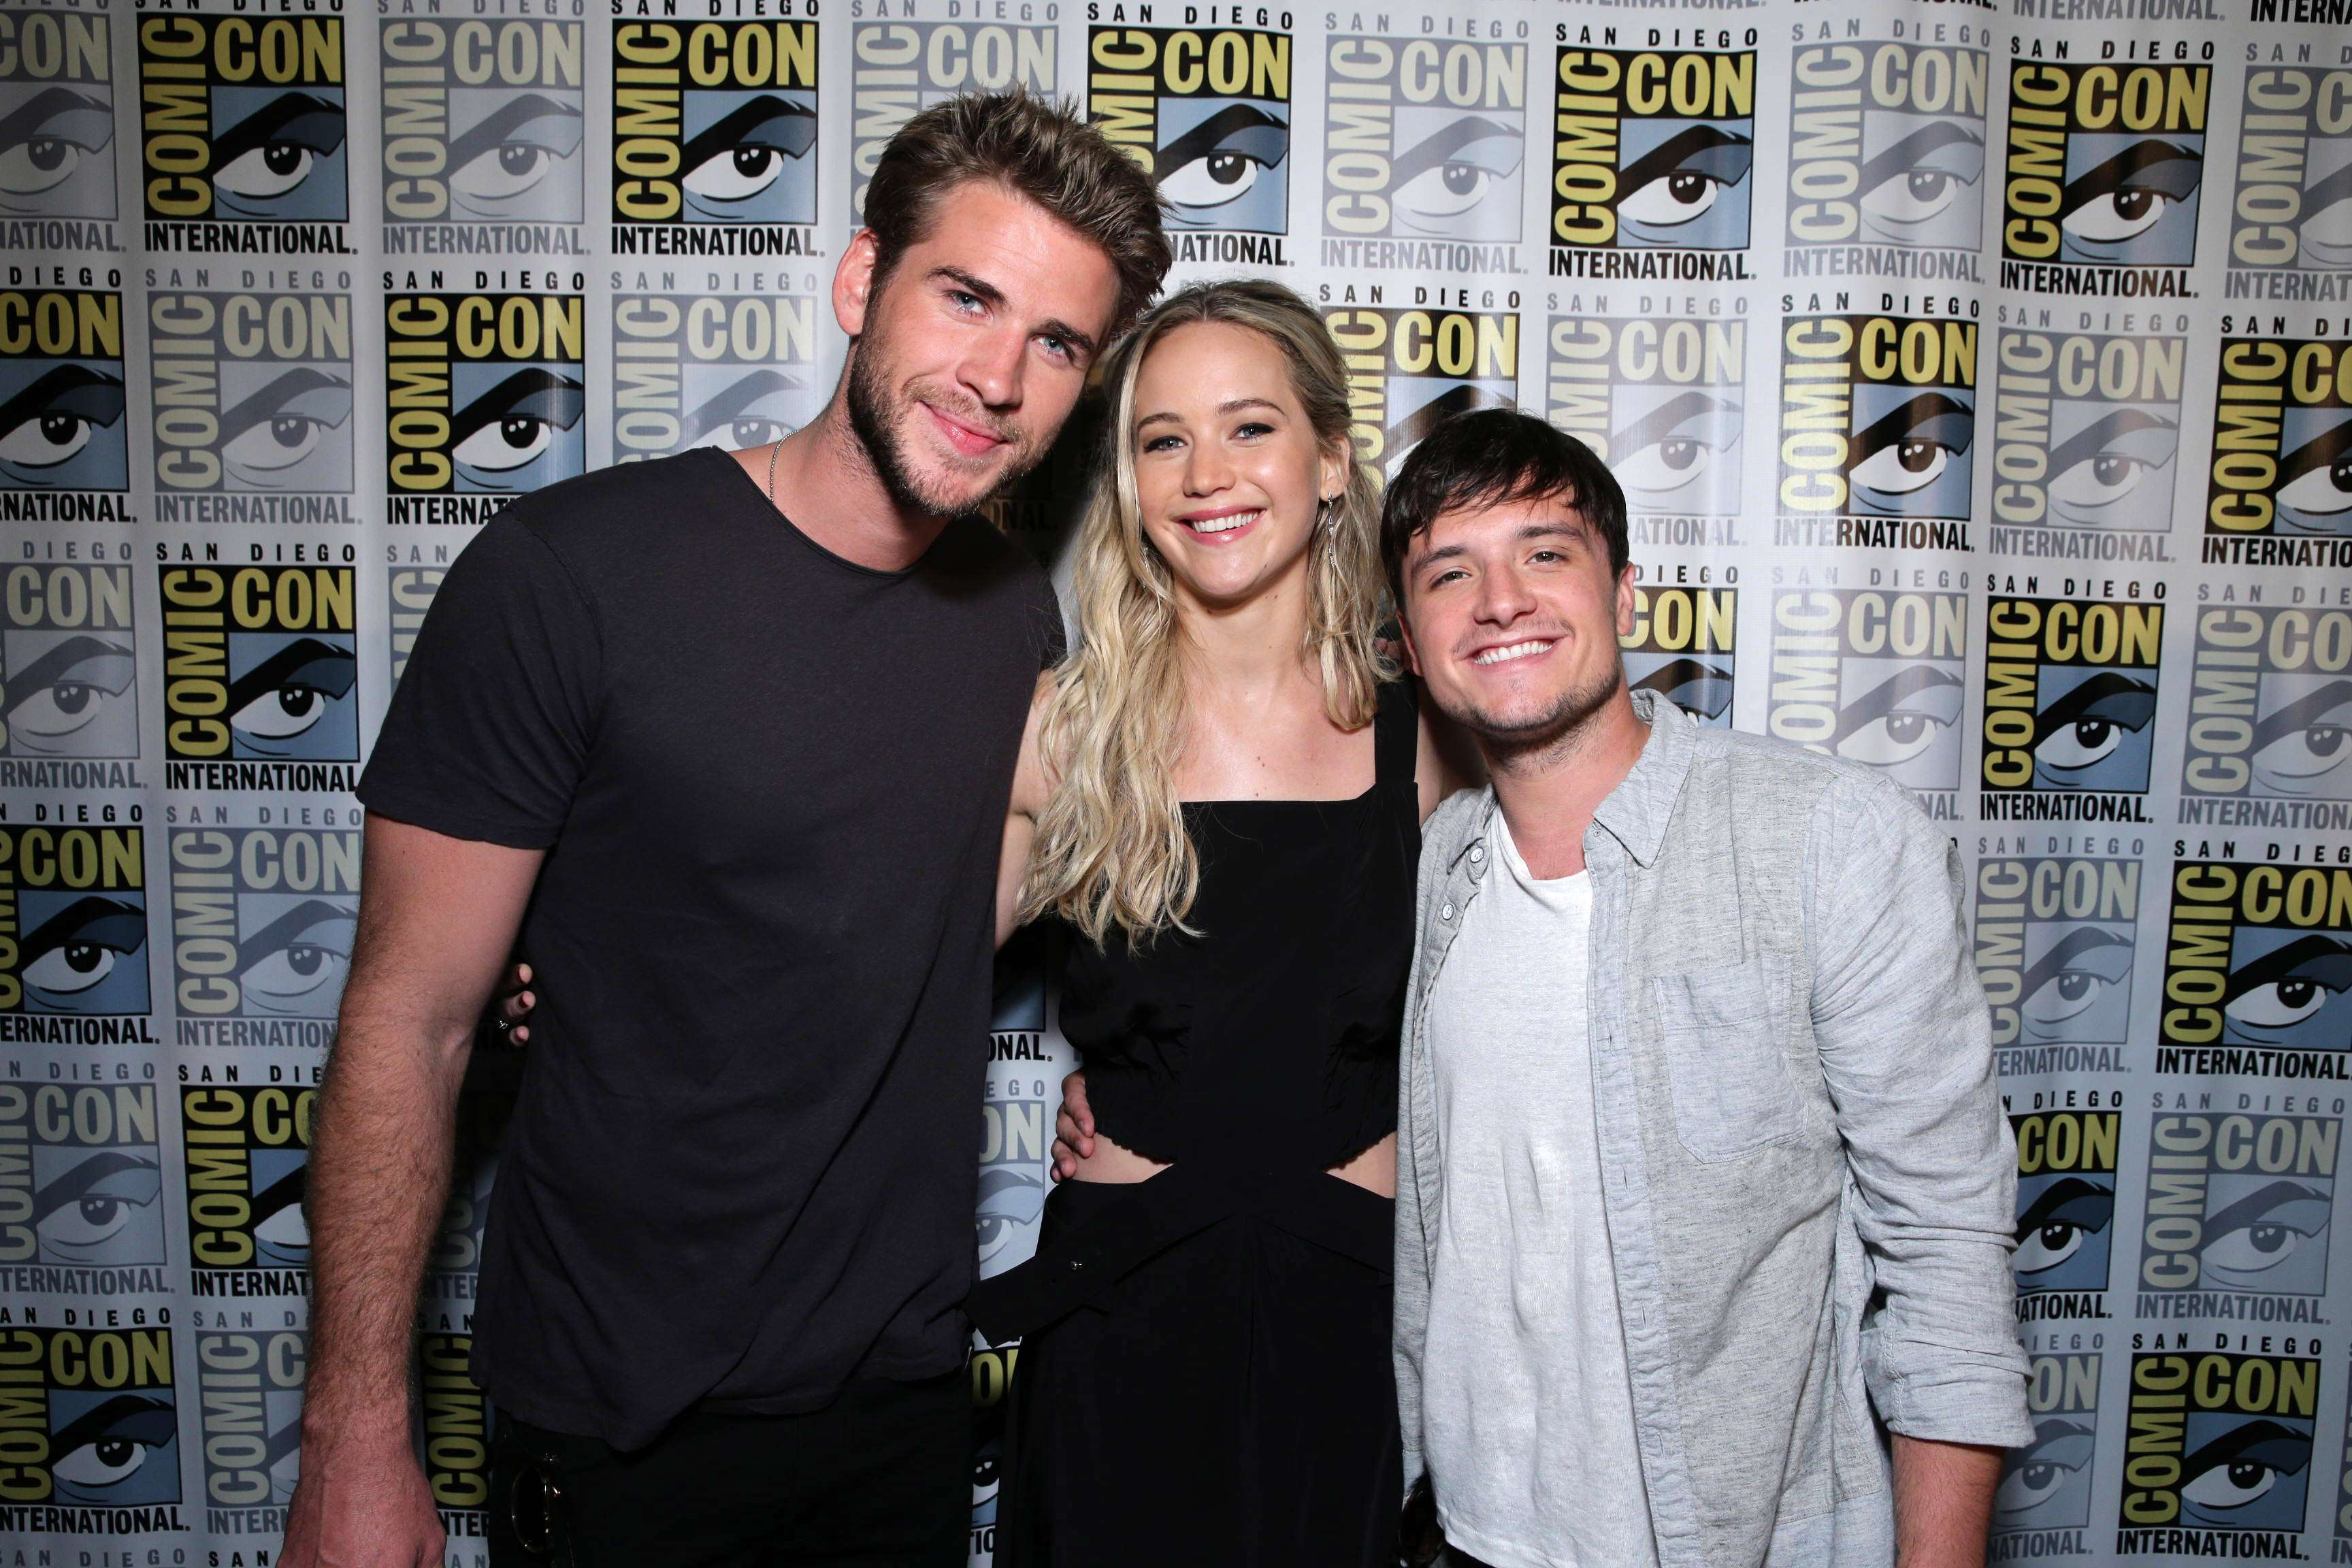 Liam Hemsworth, Josh Hutcherson, Jennifer Lawrence